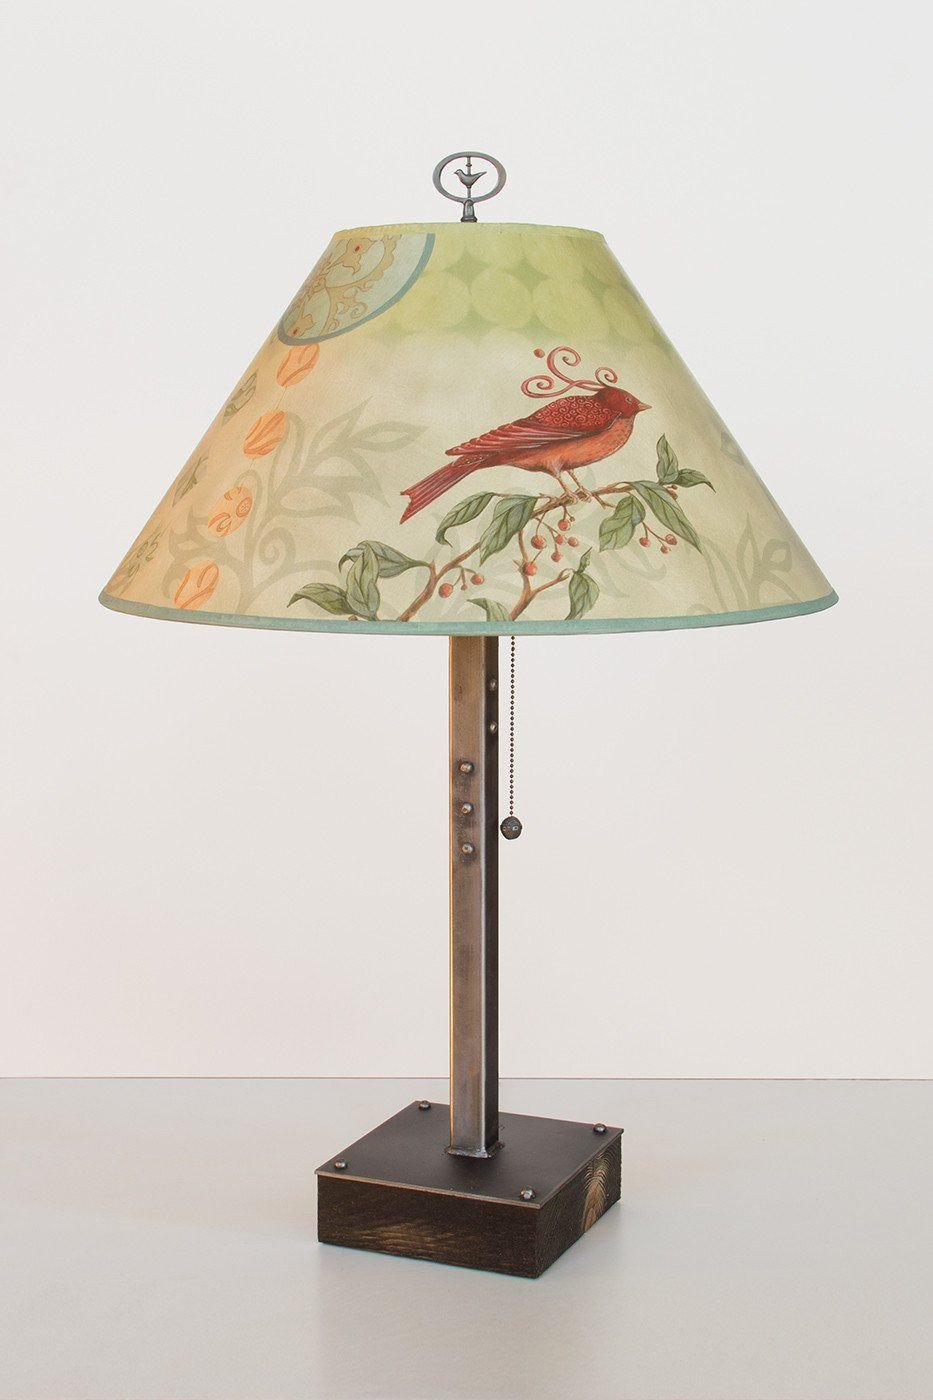 Steel Table Lamp on Wood with Large Conical Shade in Birdscape